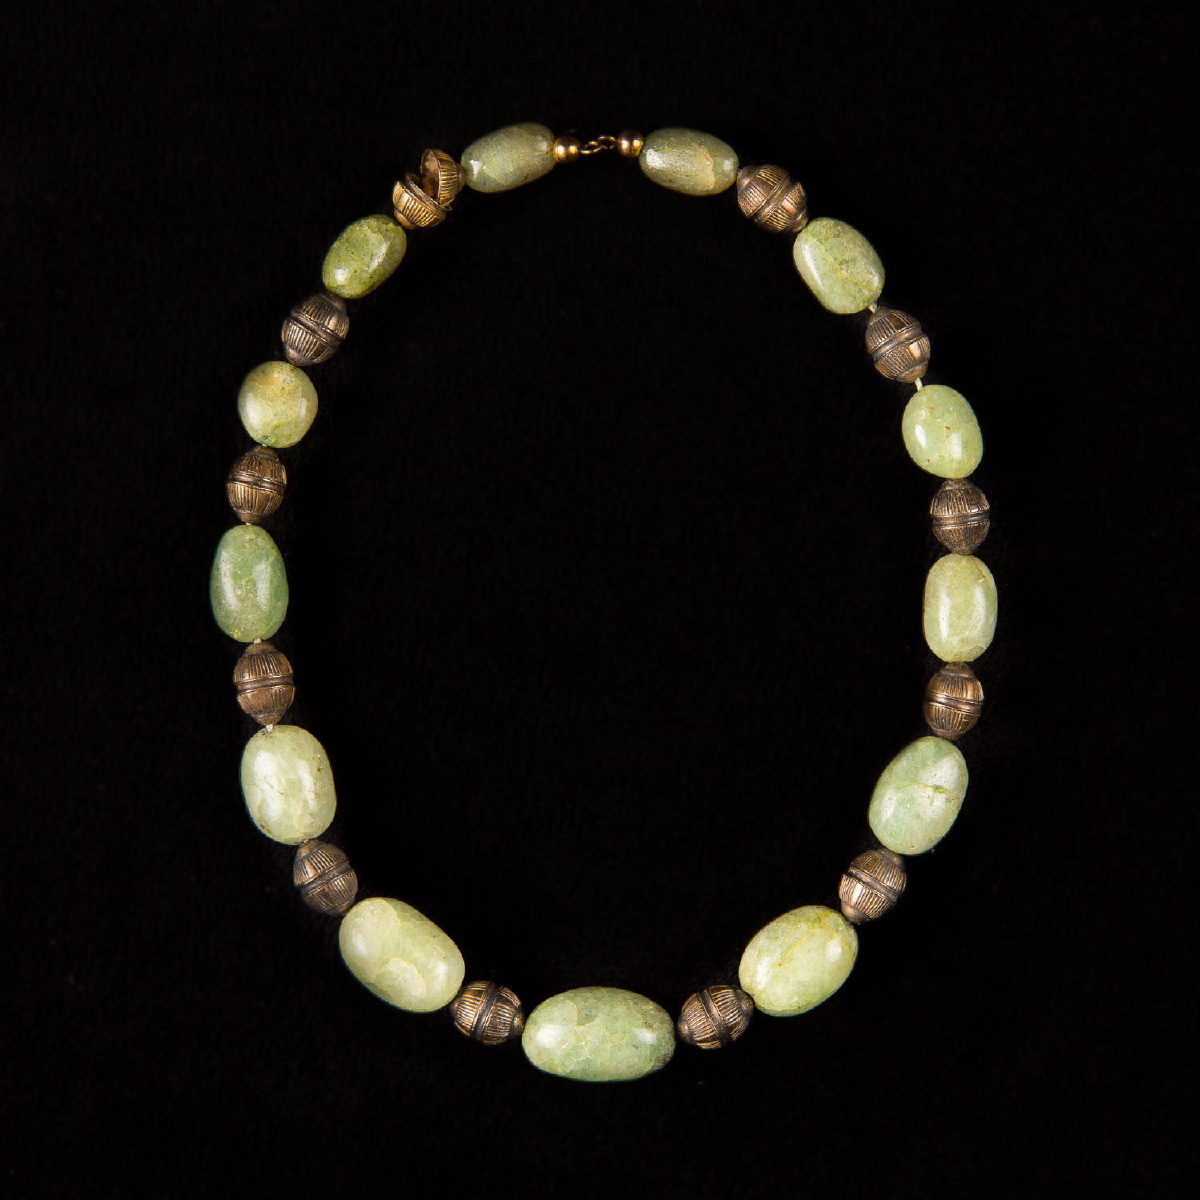 Photo ofRARE OLIVINE RITUAL NECKLACE EXHIBITED AT THE METROPOLITAN MUSEUM